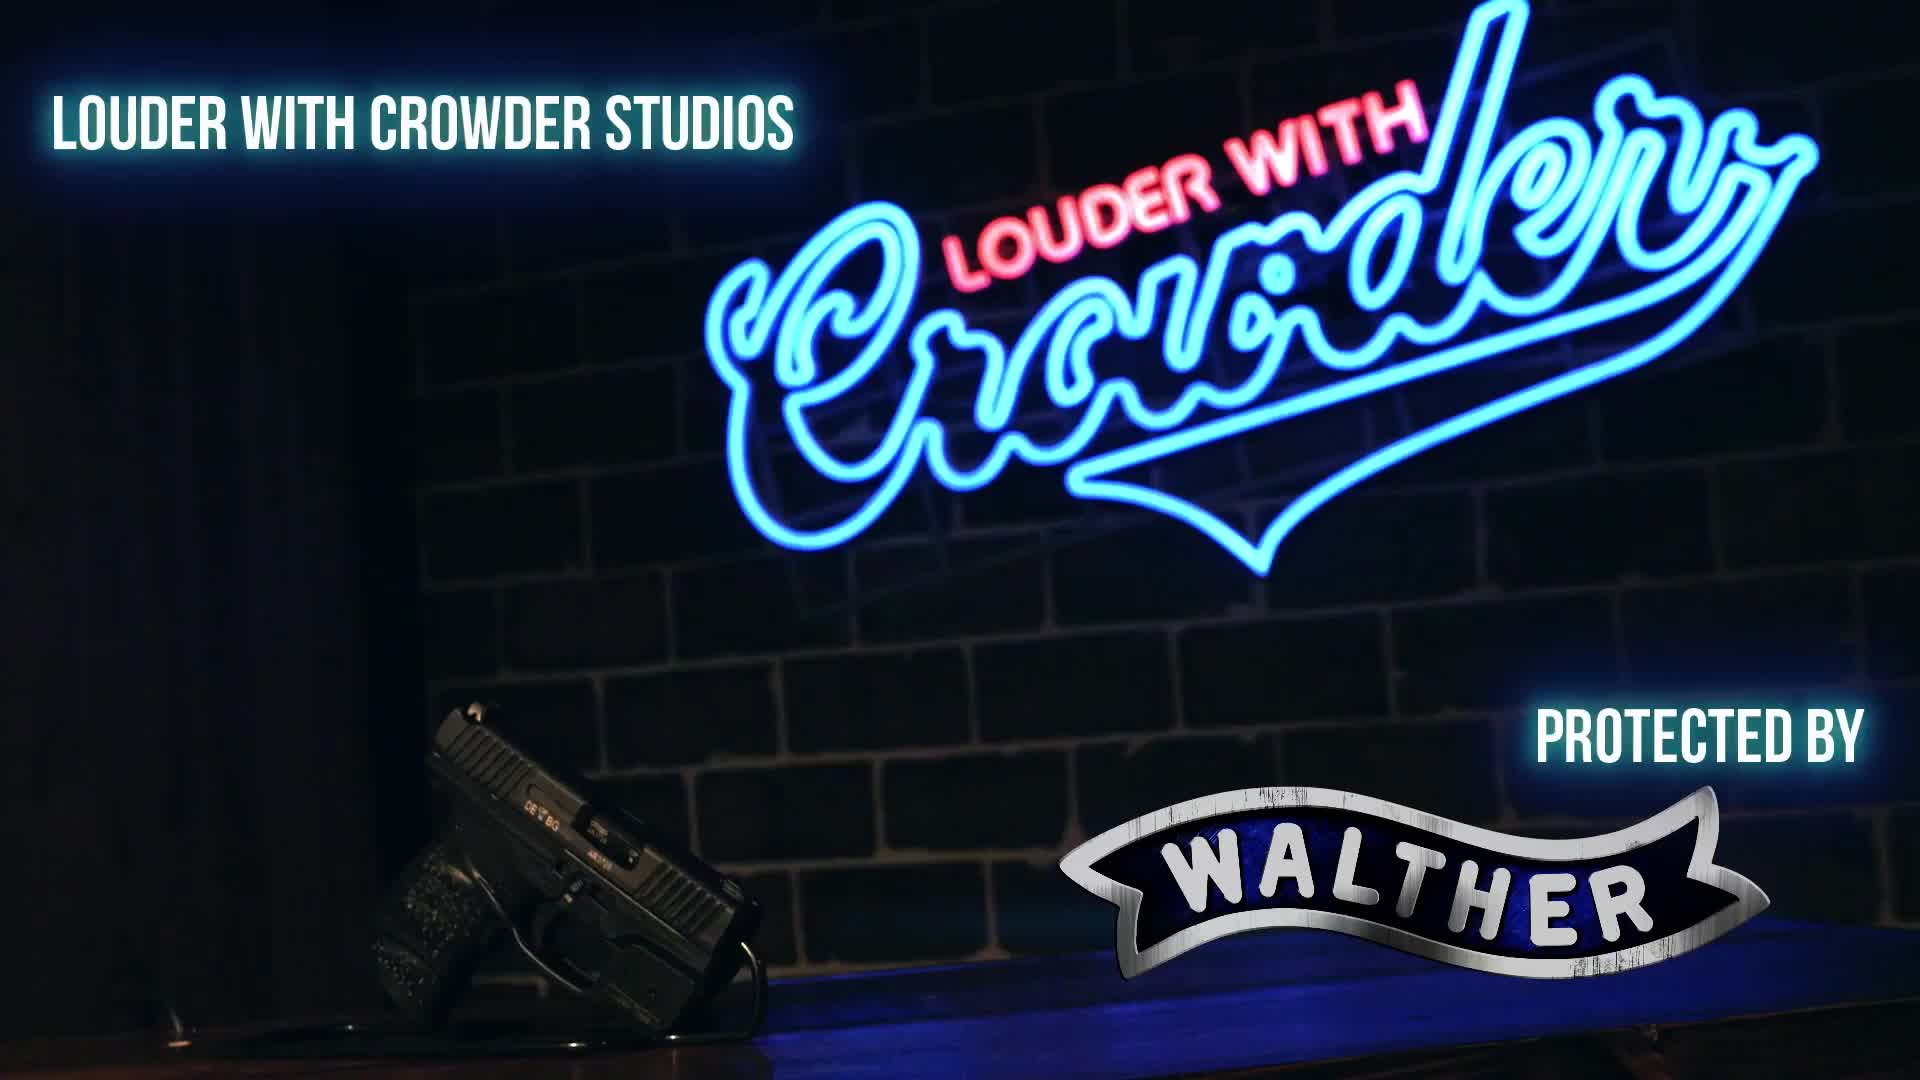 2nd Amendment, Feminist Boycott, Second Amendment, comedy, conservative, culture, entertainment, funny, left, liberal, libertarian, louder with crowder, lwc, mug club, news, not gay jared, politics, right, stephen crowder, steven crowder, #292 TRUMP BETRAYS ON GUN RIGHTS?! Jordan Peterson and Kyle Kashuv | Louder With Crowder GIFs